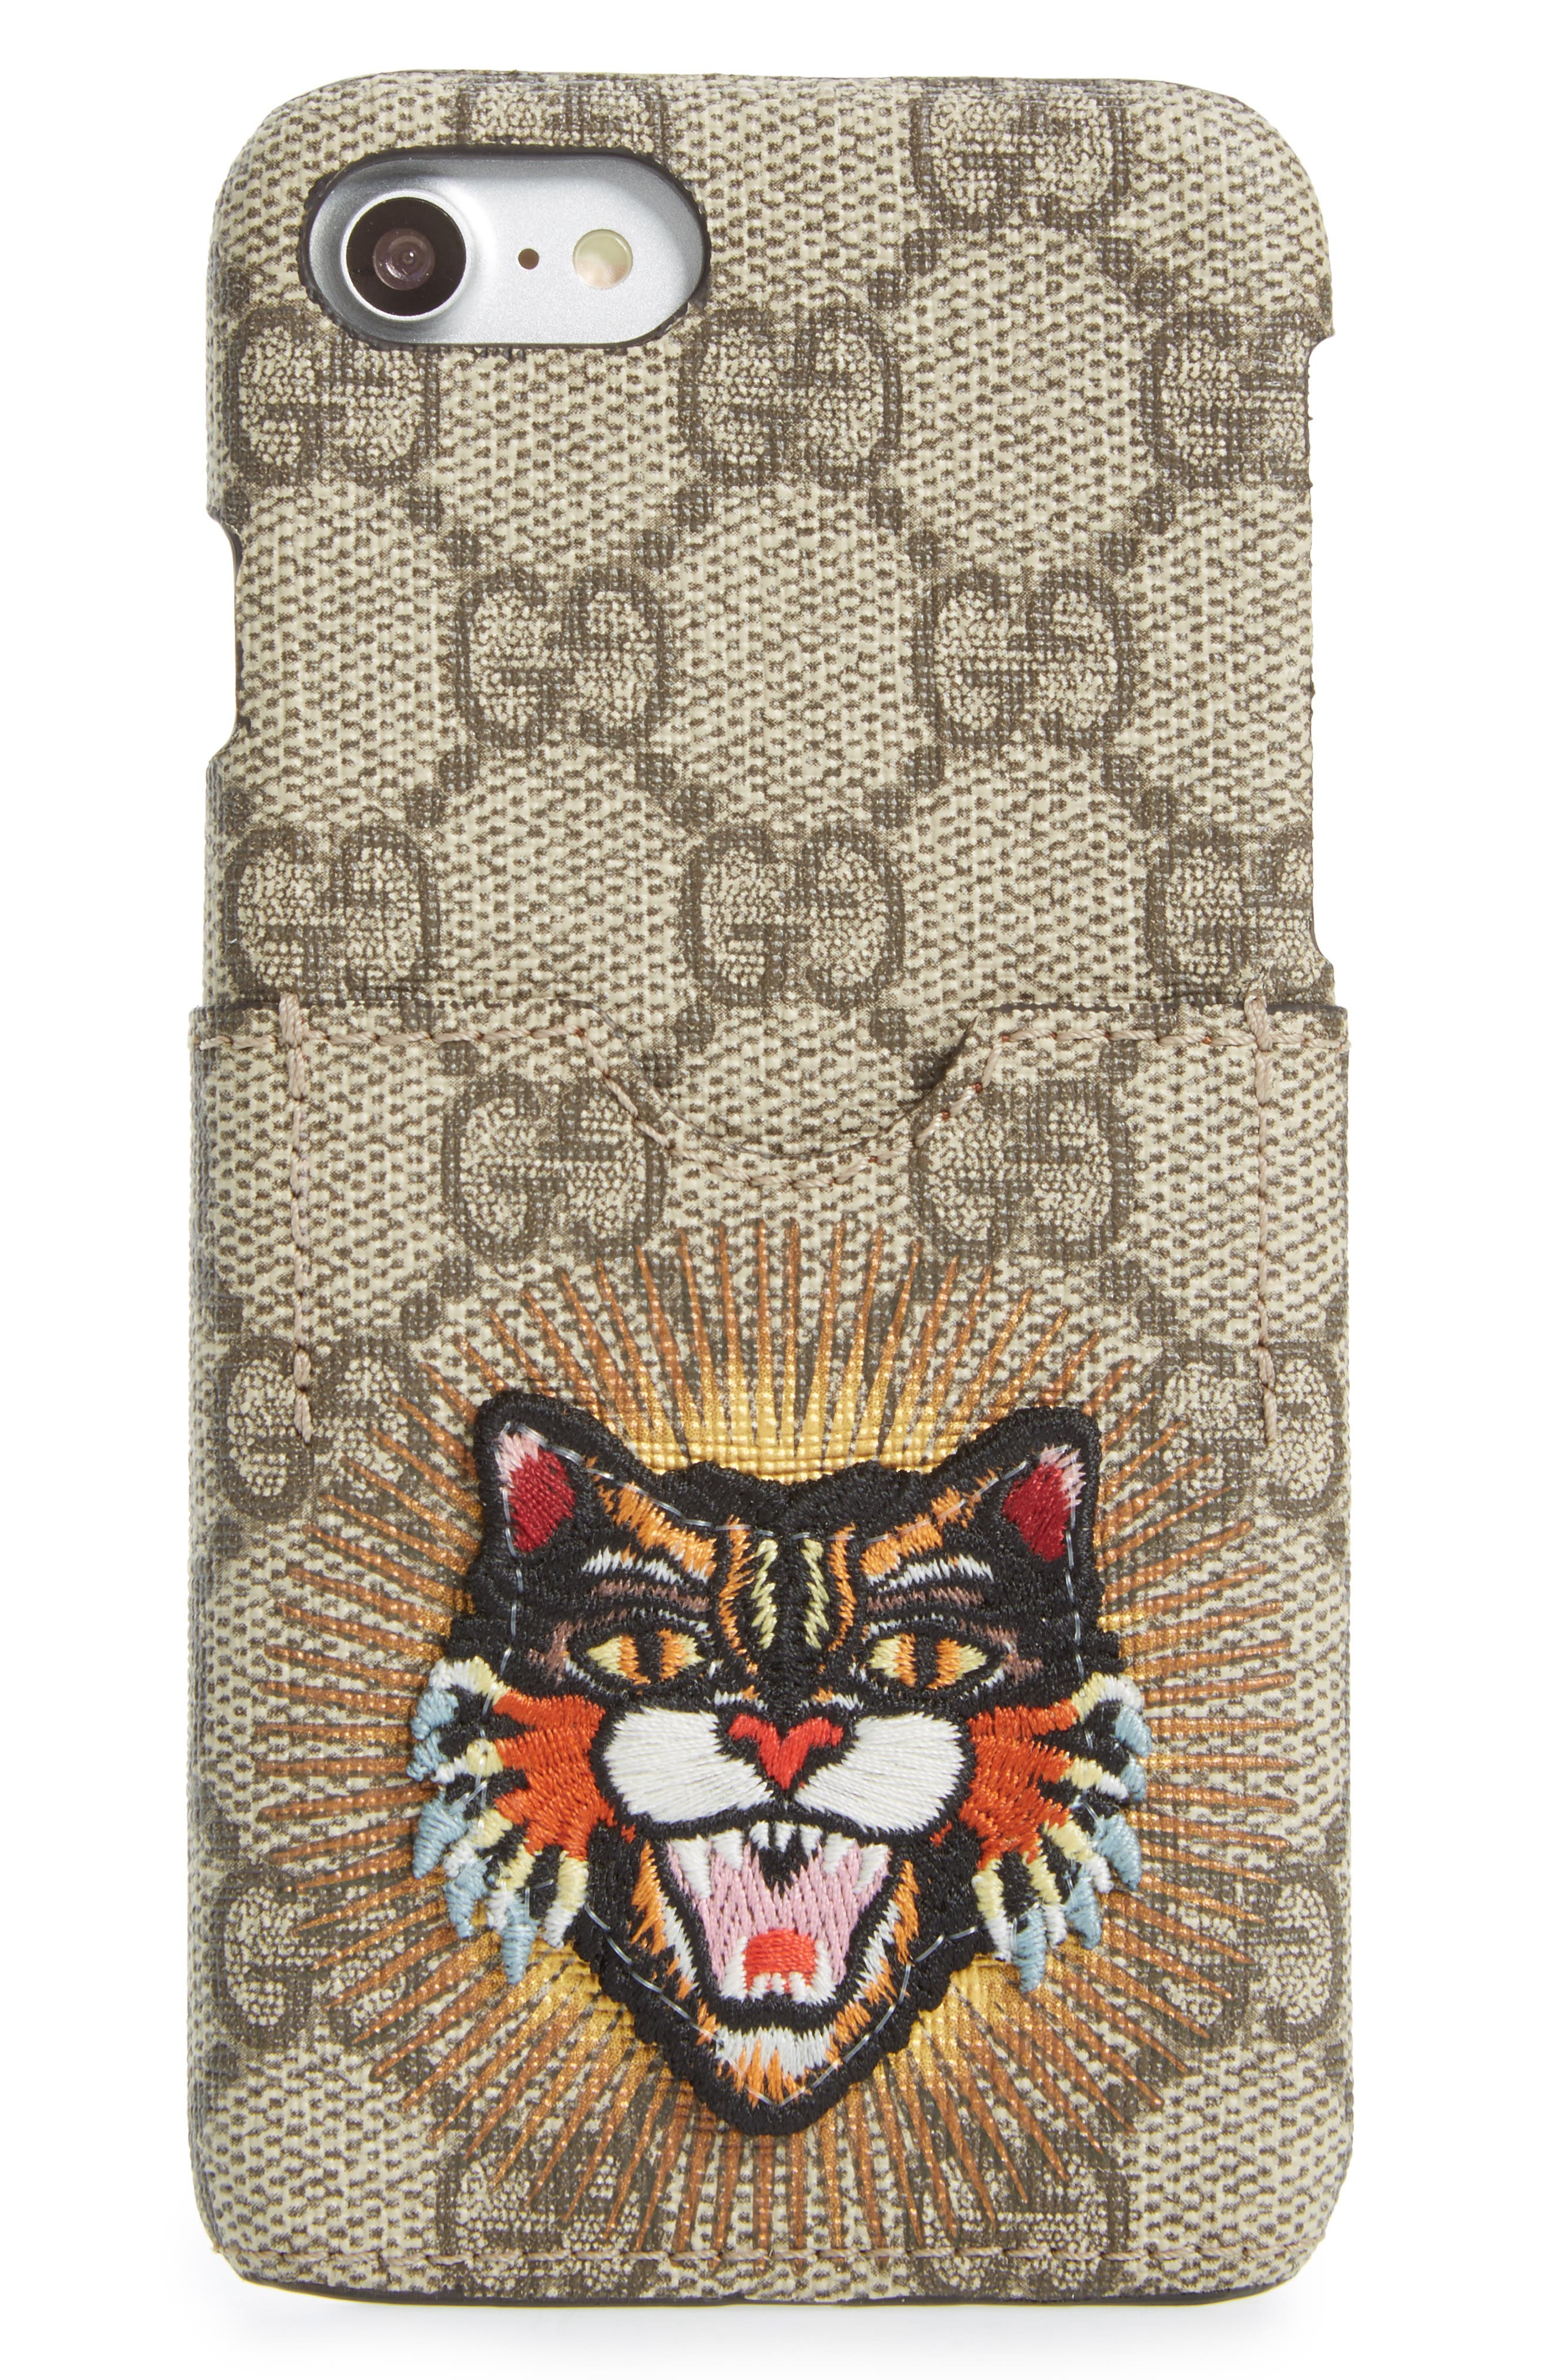 Embroidered Angry Cat GG Supreme iPhone 7 Case,                             Alternate thumbnail 2, color,                             250